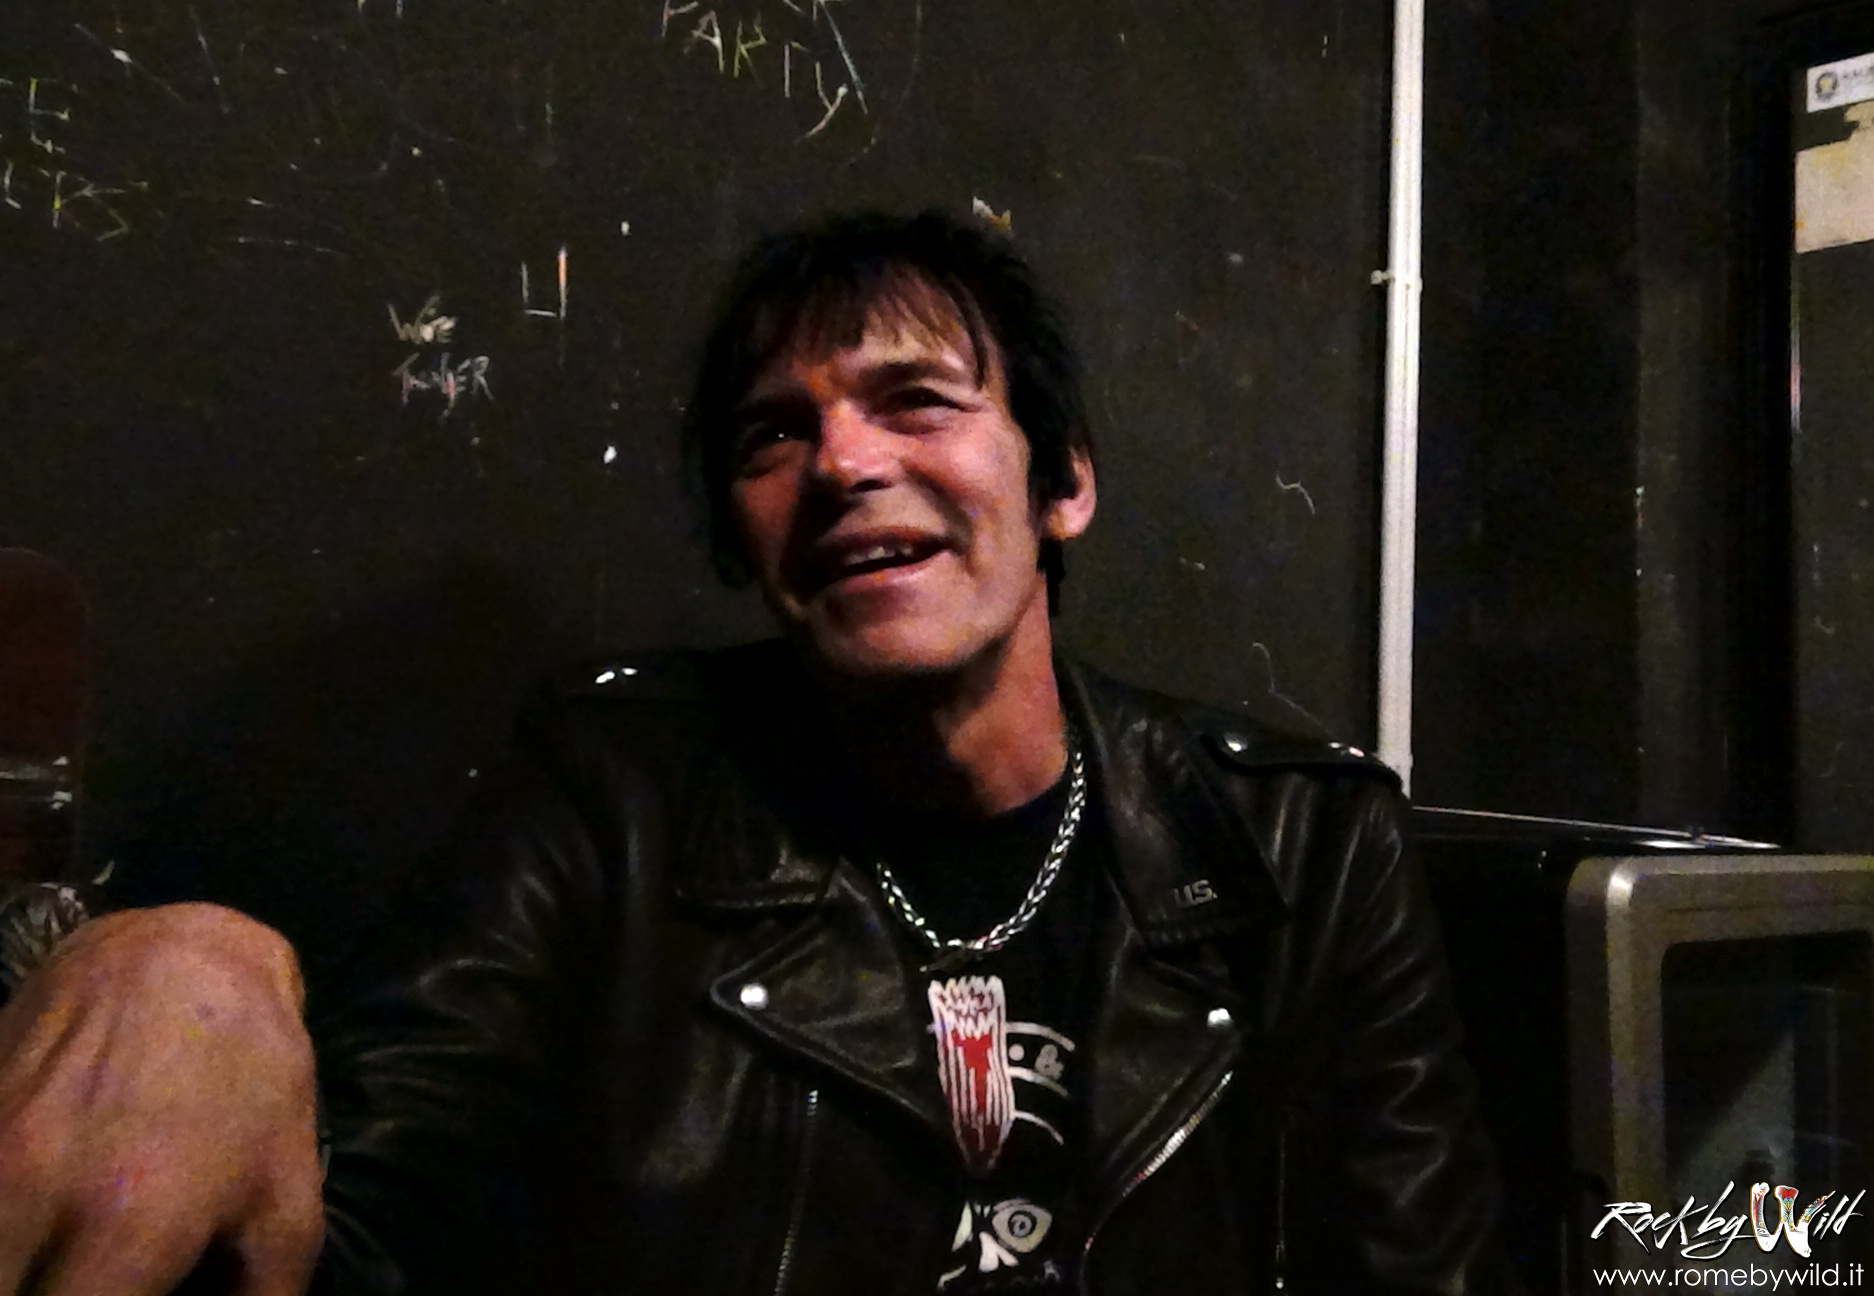 Rock by Wild intervista Richie Ramone @ Locanda Atlantide - 05 05 2015